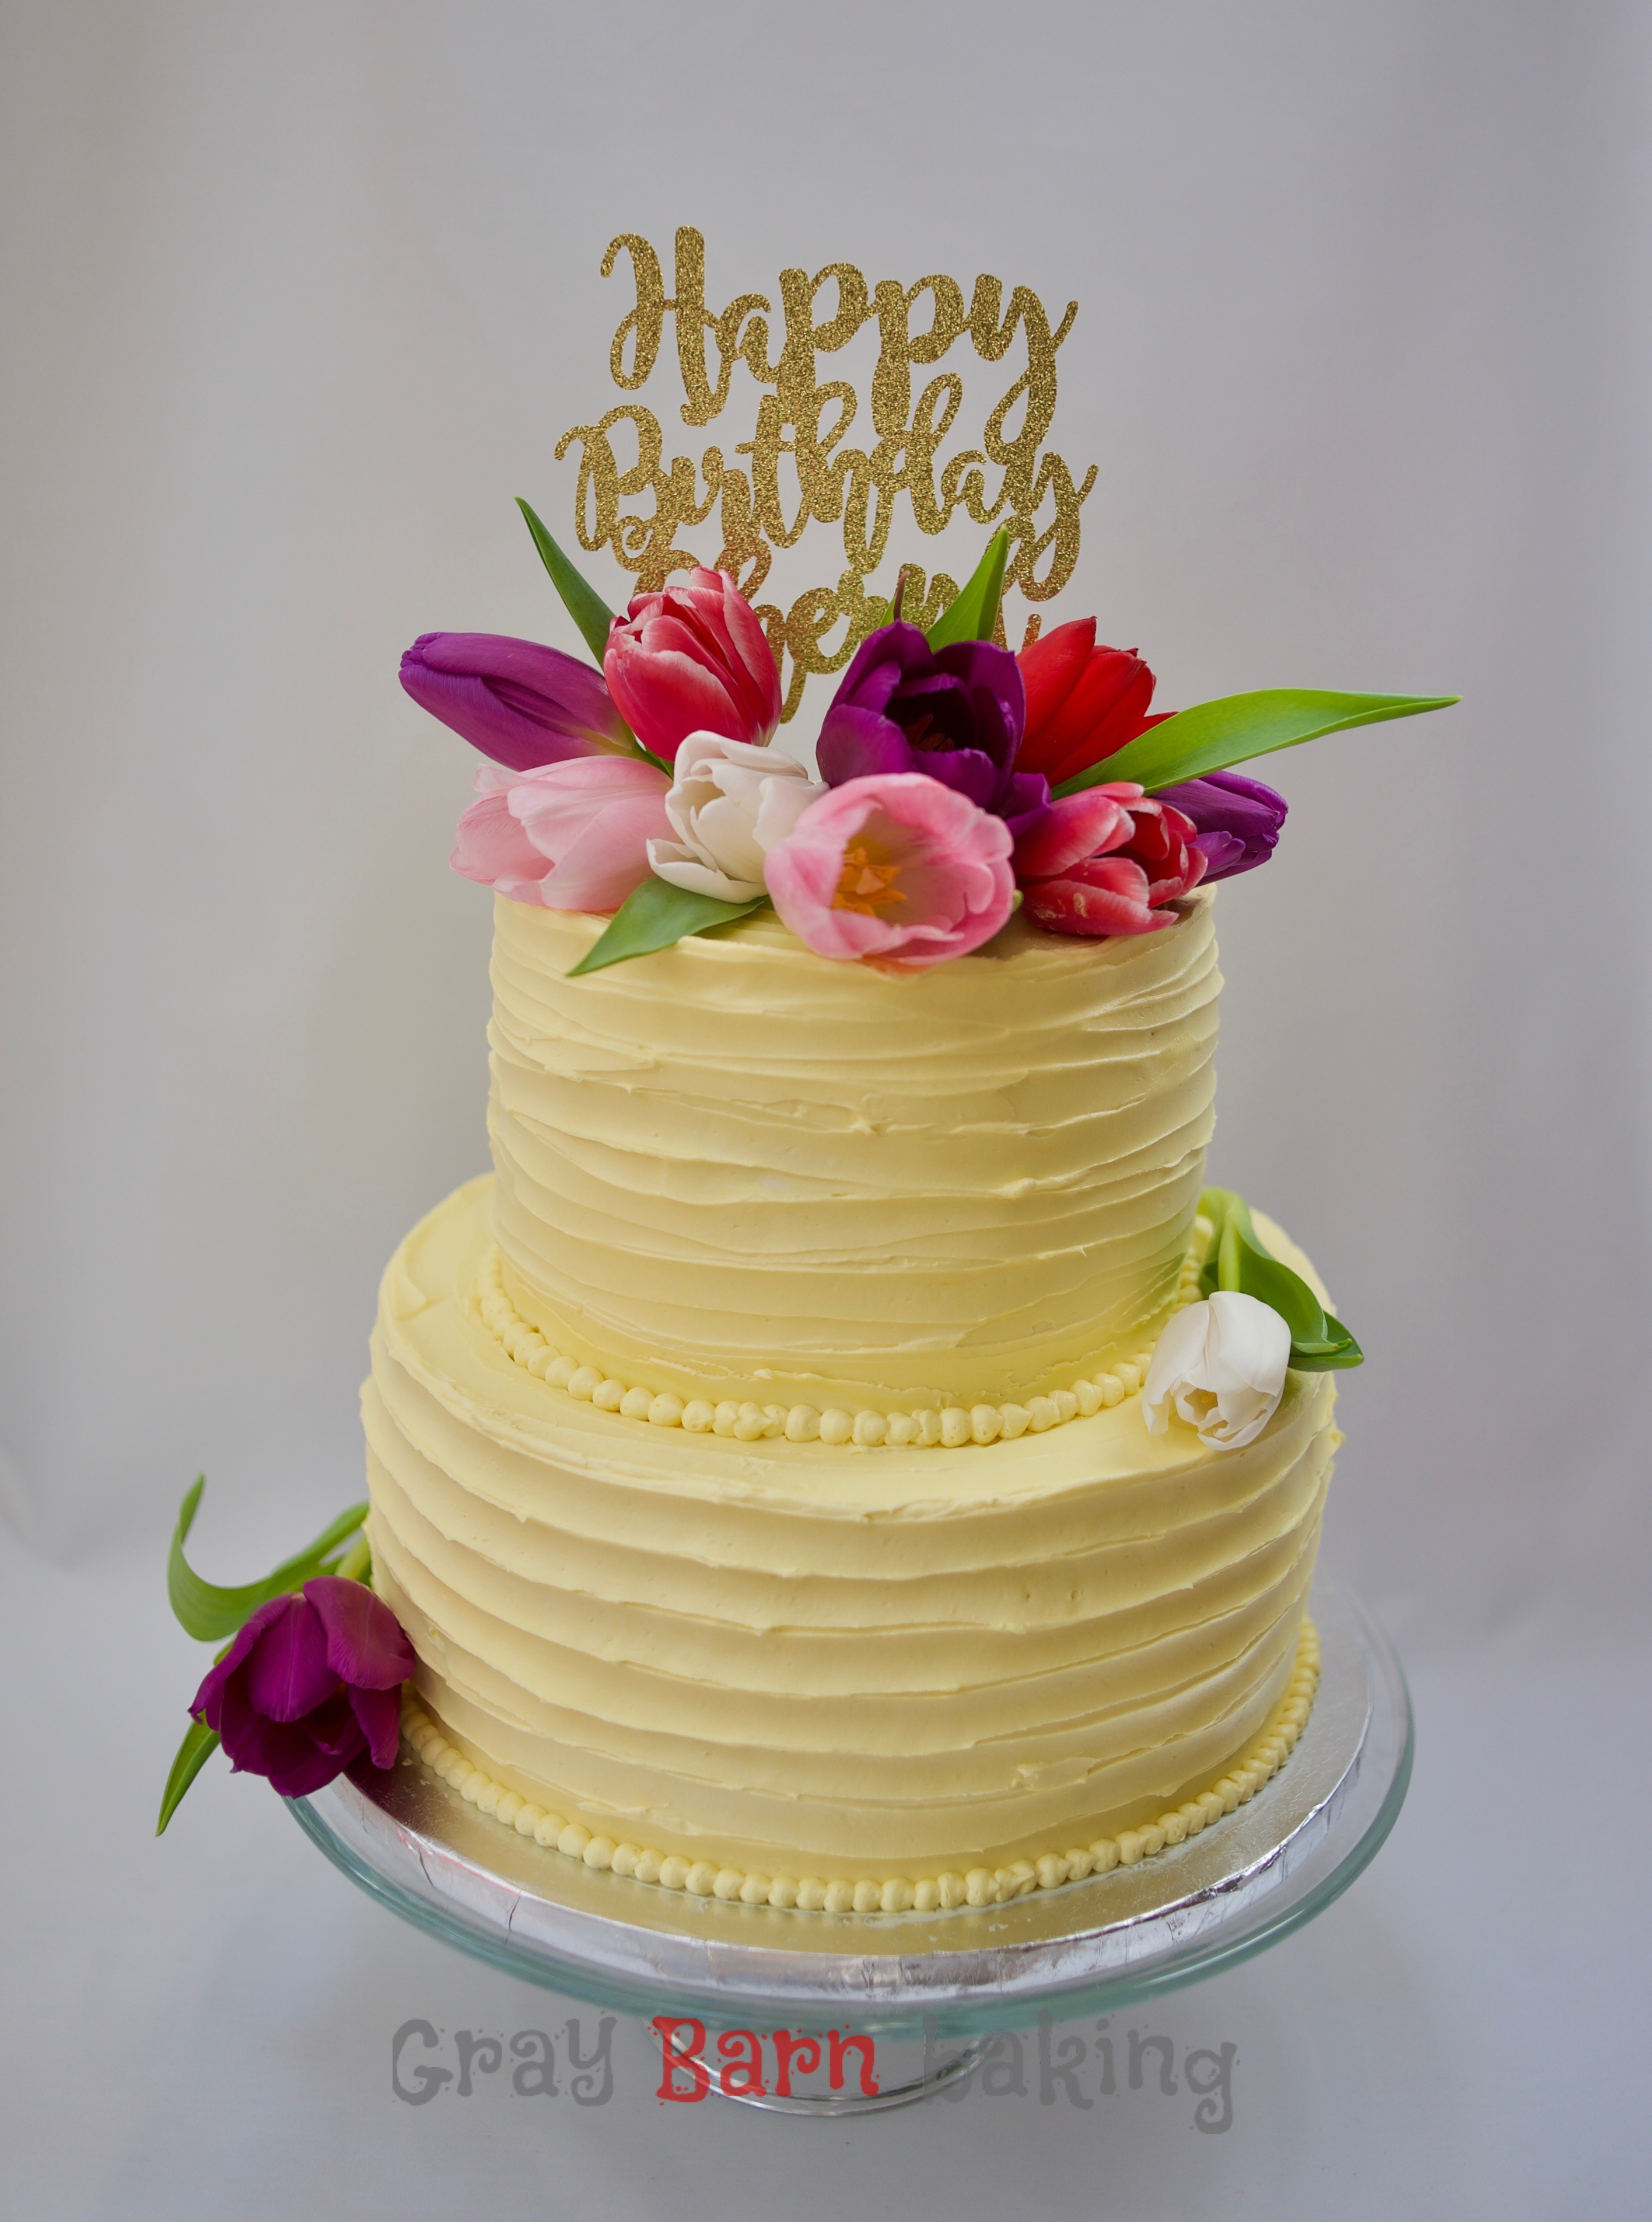 Pictures of tiered birthday cakes